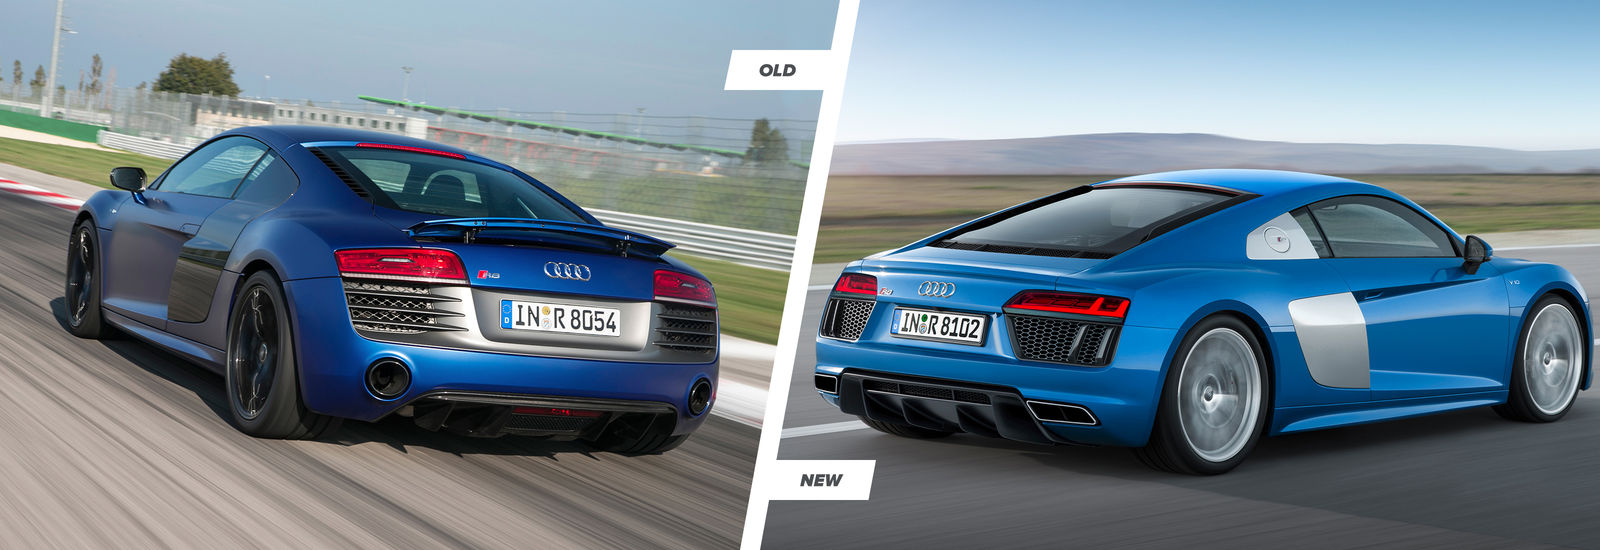 2015 Audi R8 Tt And Old R8 Comparison Carwow